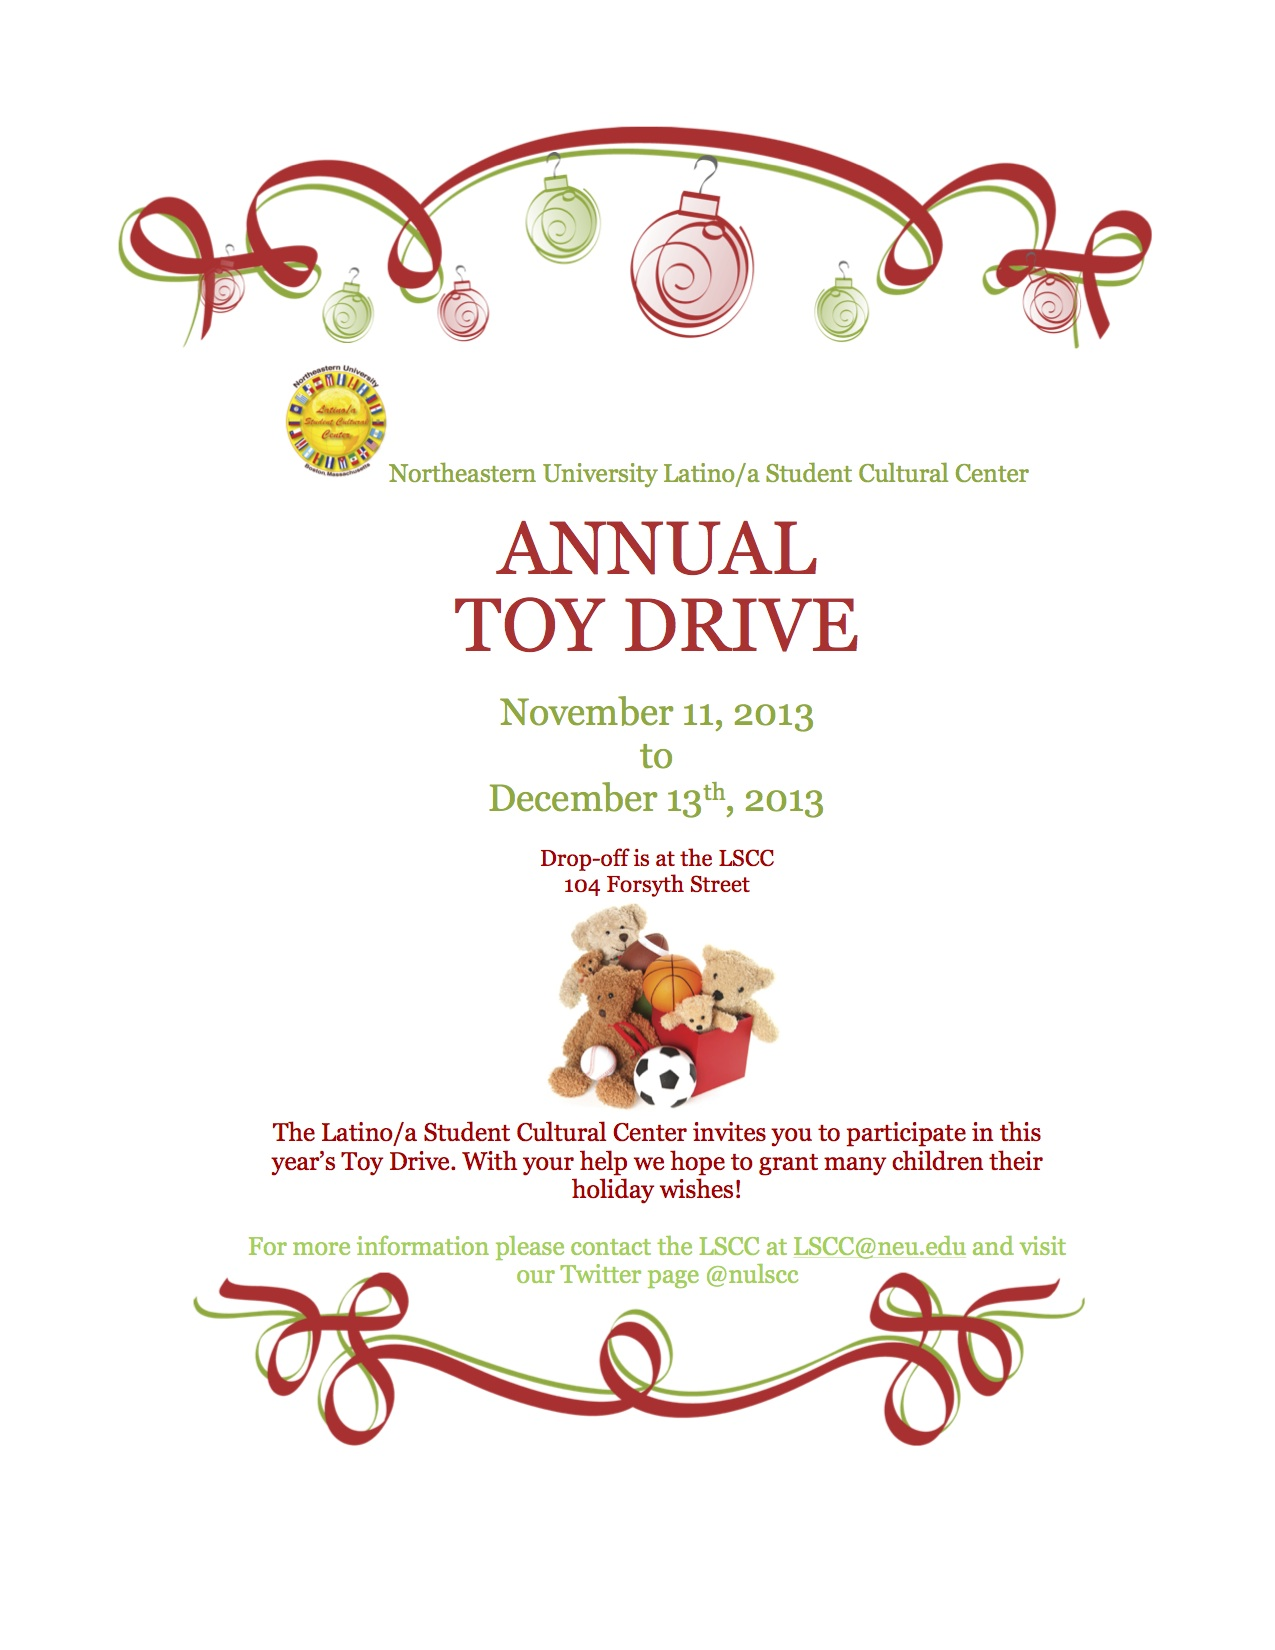 LSCC Toy Drive | NU Student Life